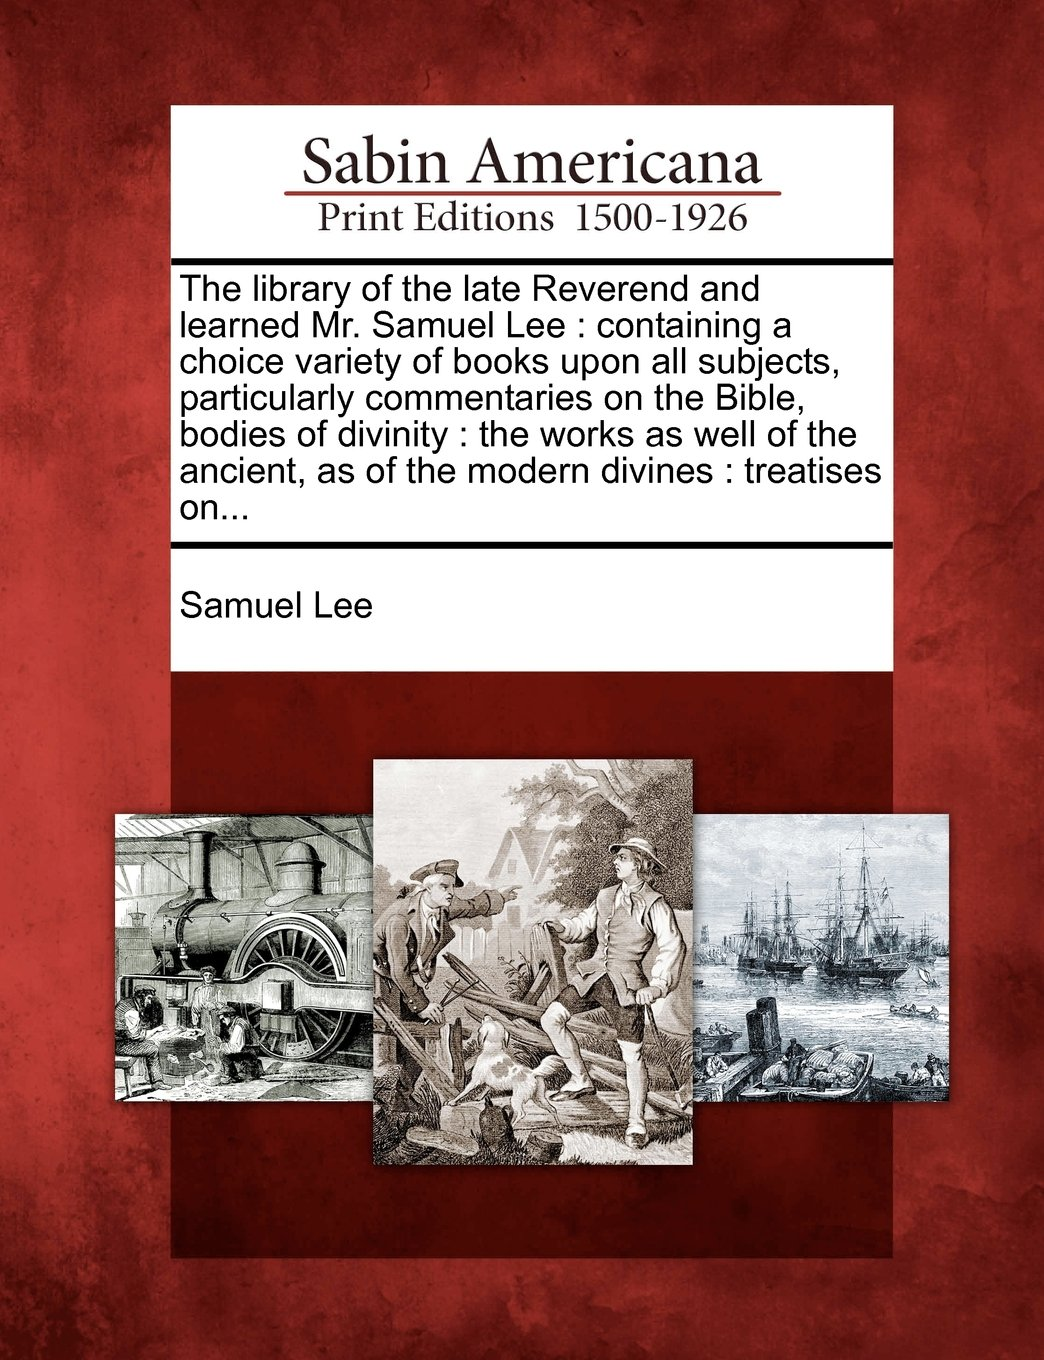 Read Online The library of the late Reverend and learned Mr. Samuel Lee: containing a choice variety of books upon all subjects, particularly commentaries on the ... as of the modern divines : treatises on... pdf